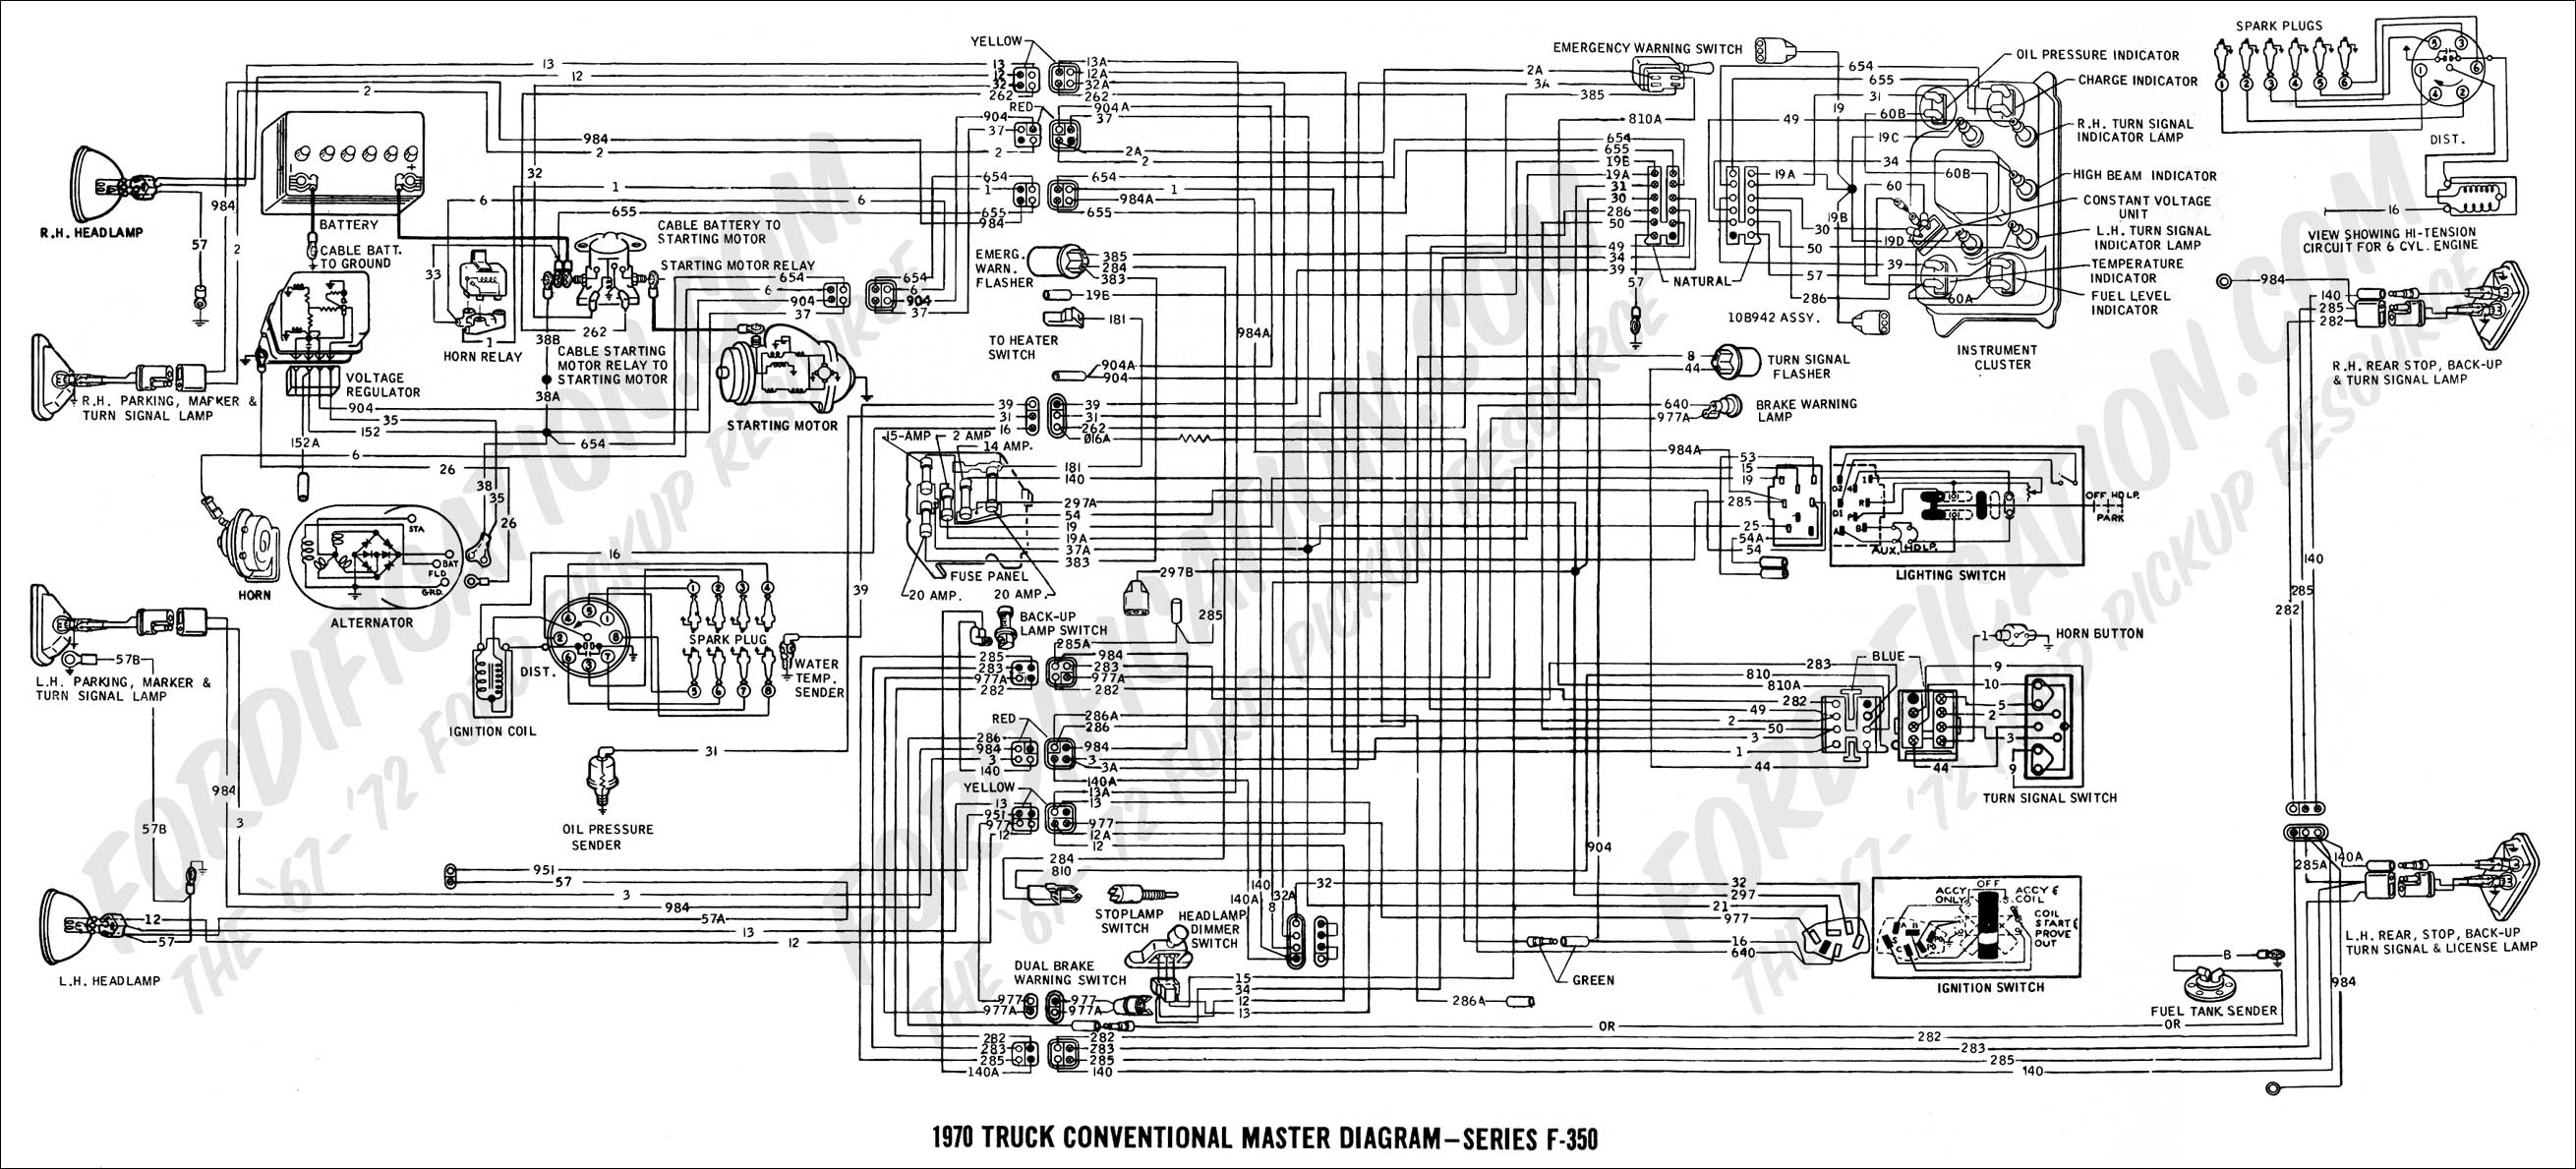 2008 Ford Super Duty Wiring Diagram - Today Wiring Diagram - 2008 Ford F250 Trailer Wiring Diagram